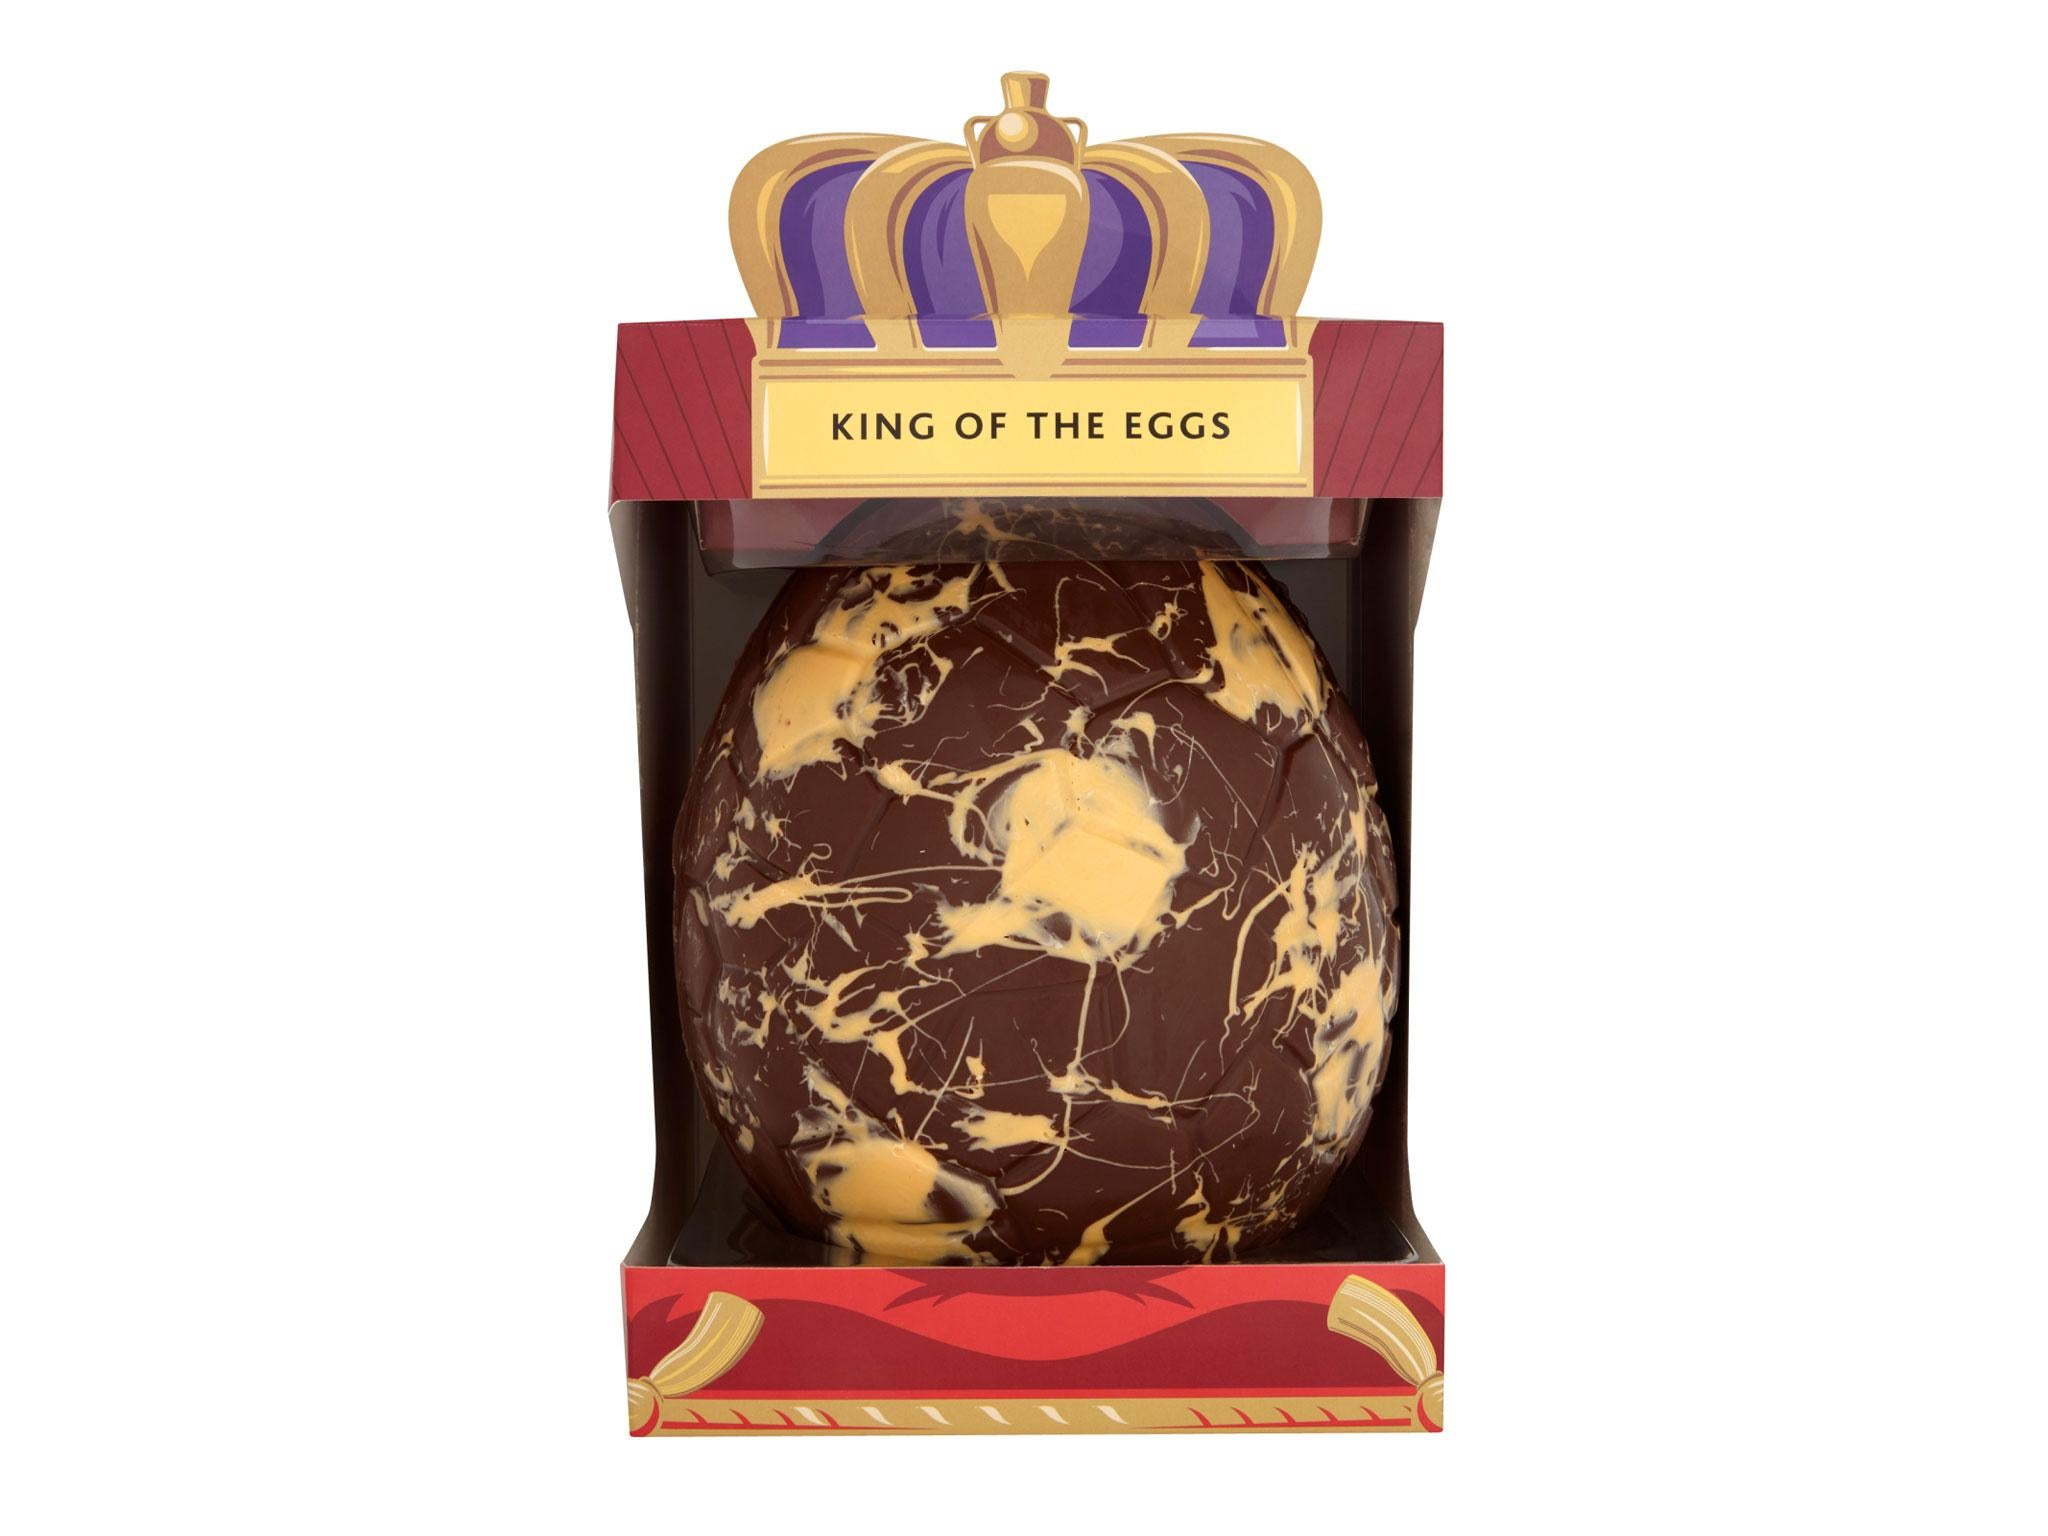 15 best kids easter eggs 2018 the independent as well as boasting an attractive marbling effect making it an egg with a real wow factor for kids to feast their eyes on come easter morning negle Image collections